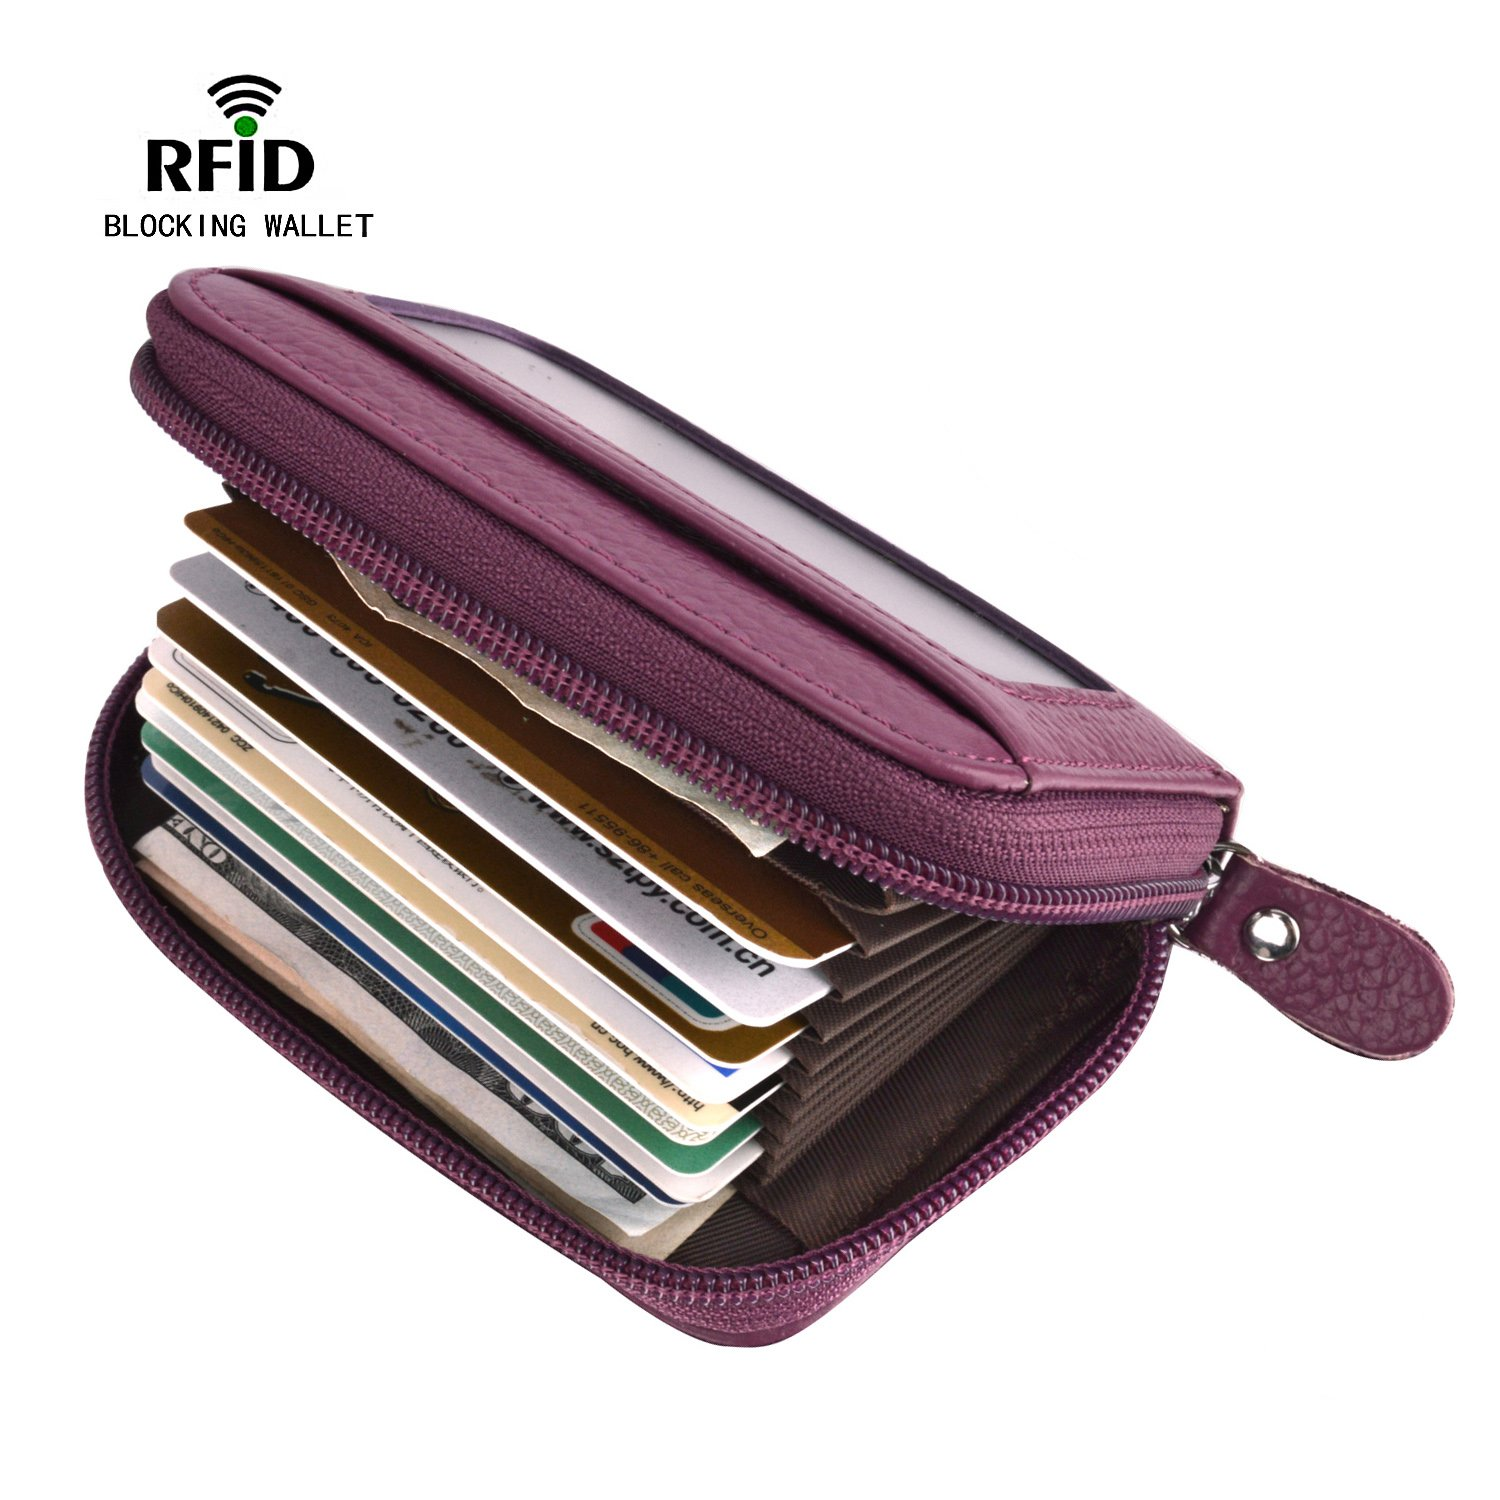 RFID Blocking Wallet for Women, Security Card Holder for Travel and Work, for Business Cards, and ID Card, Genuine Leather Accordion Zip Wallet for Credit Cards and Money KB-purple